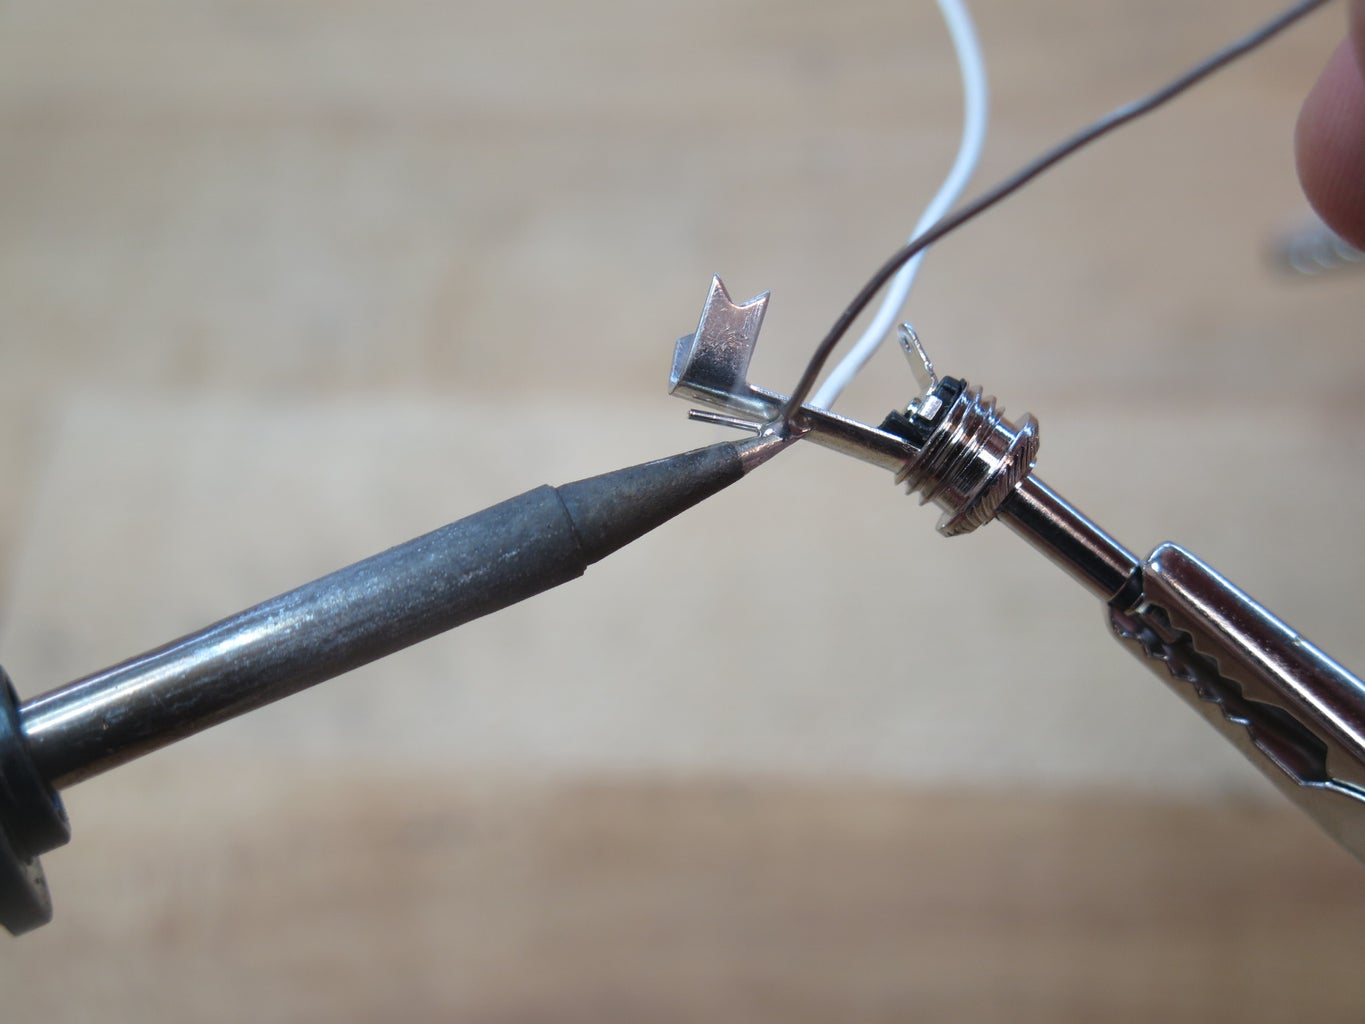 Solder the Other Two Ends to the Audio Jack